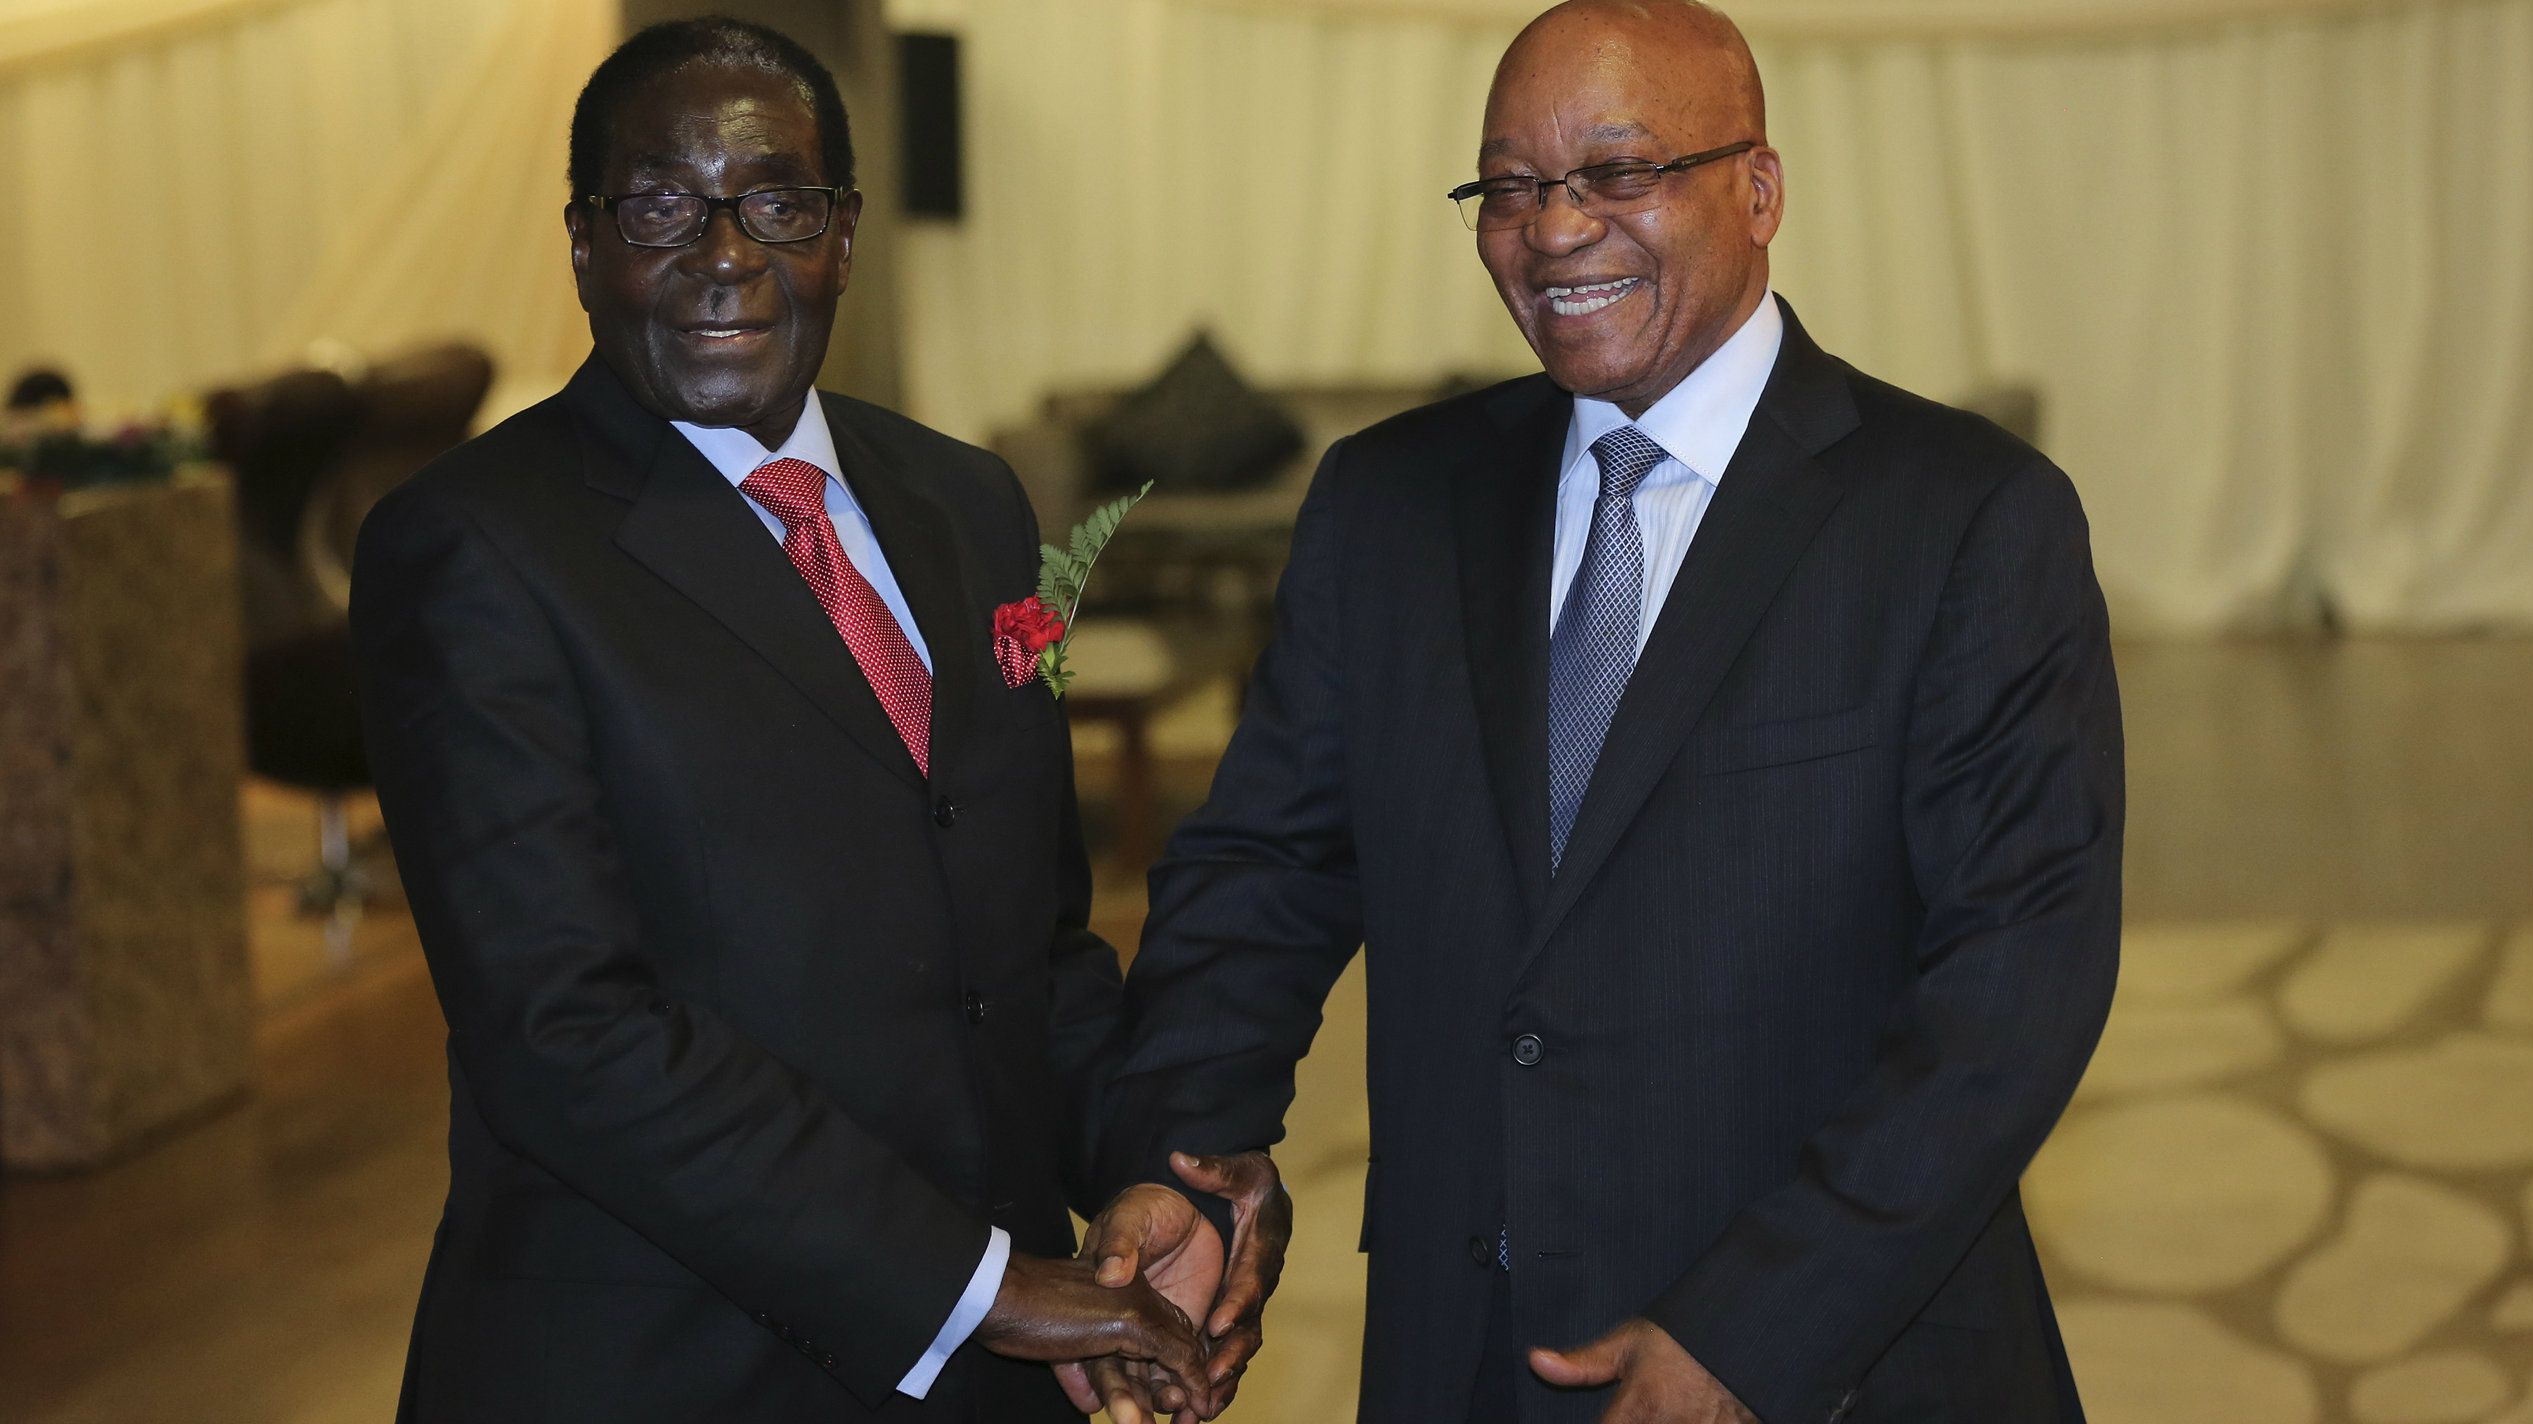 Zimbabwe's President Robert Mugabe (L) is welcomed by his South African counterpart Jacob Zuma